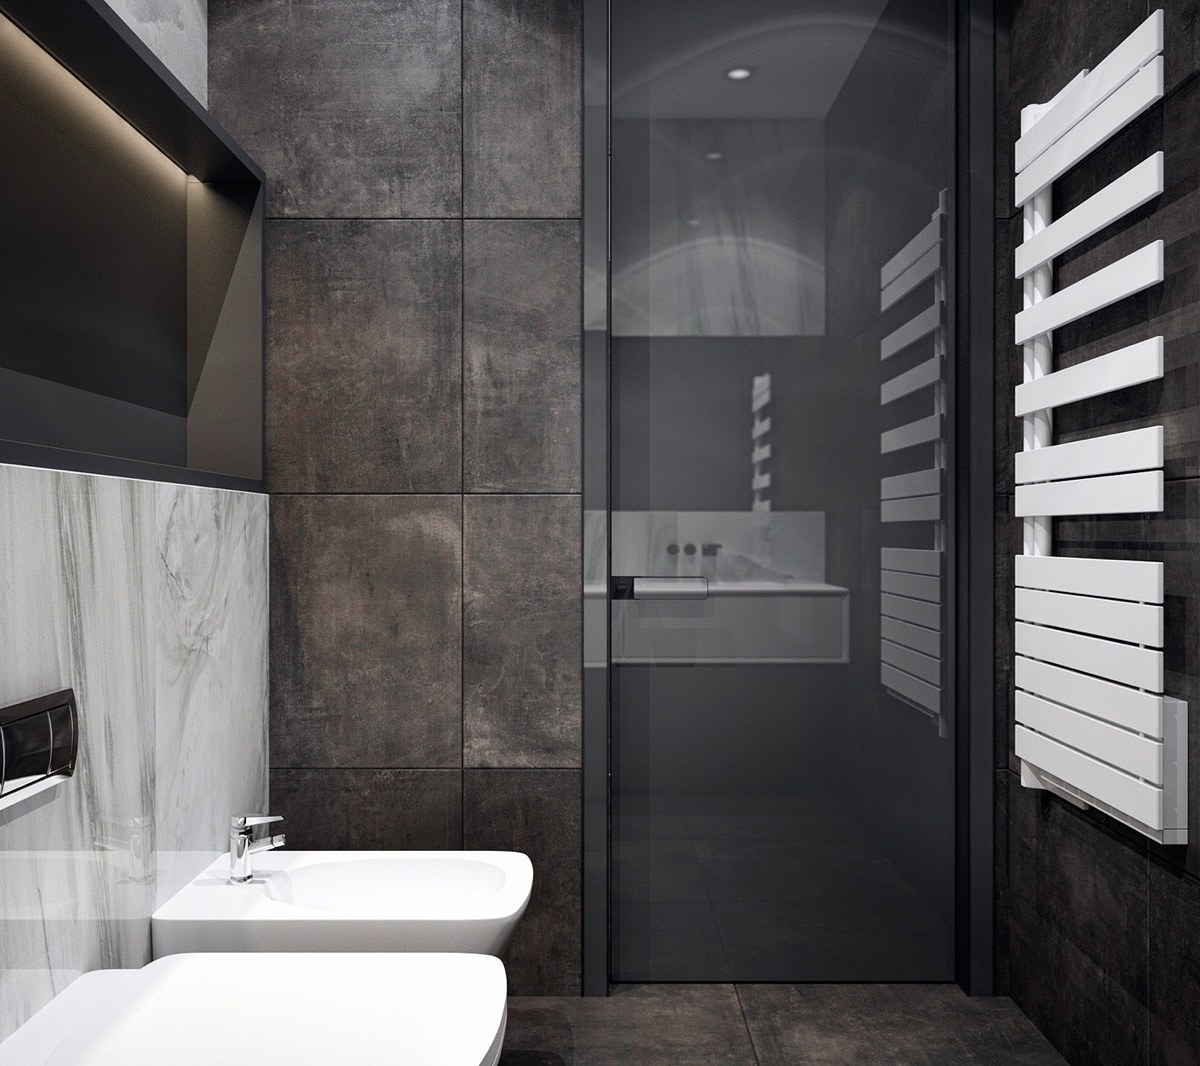 Monochromatic Bathroom Large Grey Tiles White Porcelain Fixtures - 4 monochrome minimalist spaces creating black and white magic